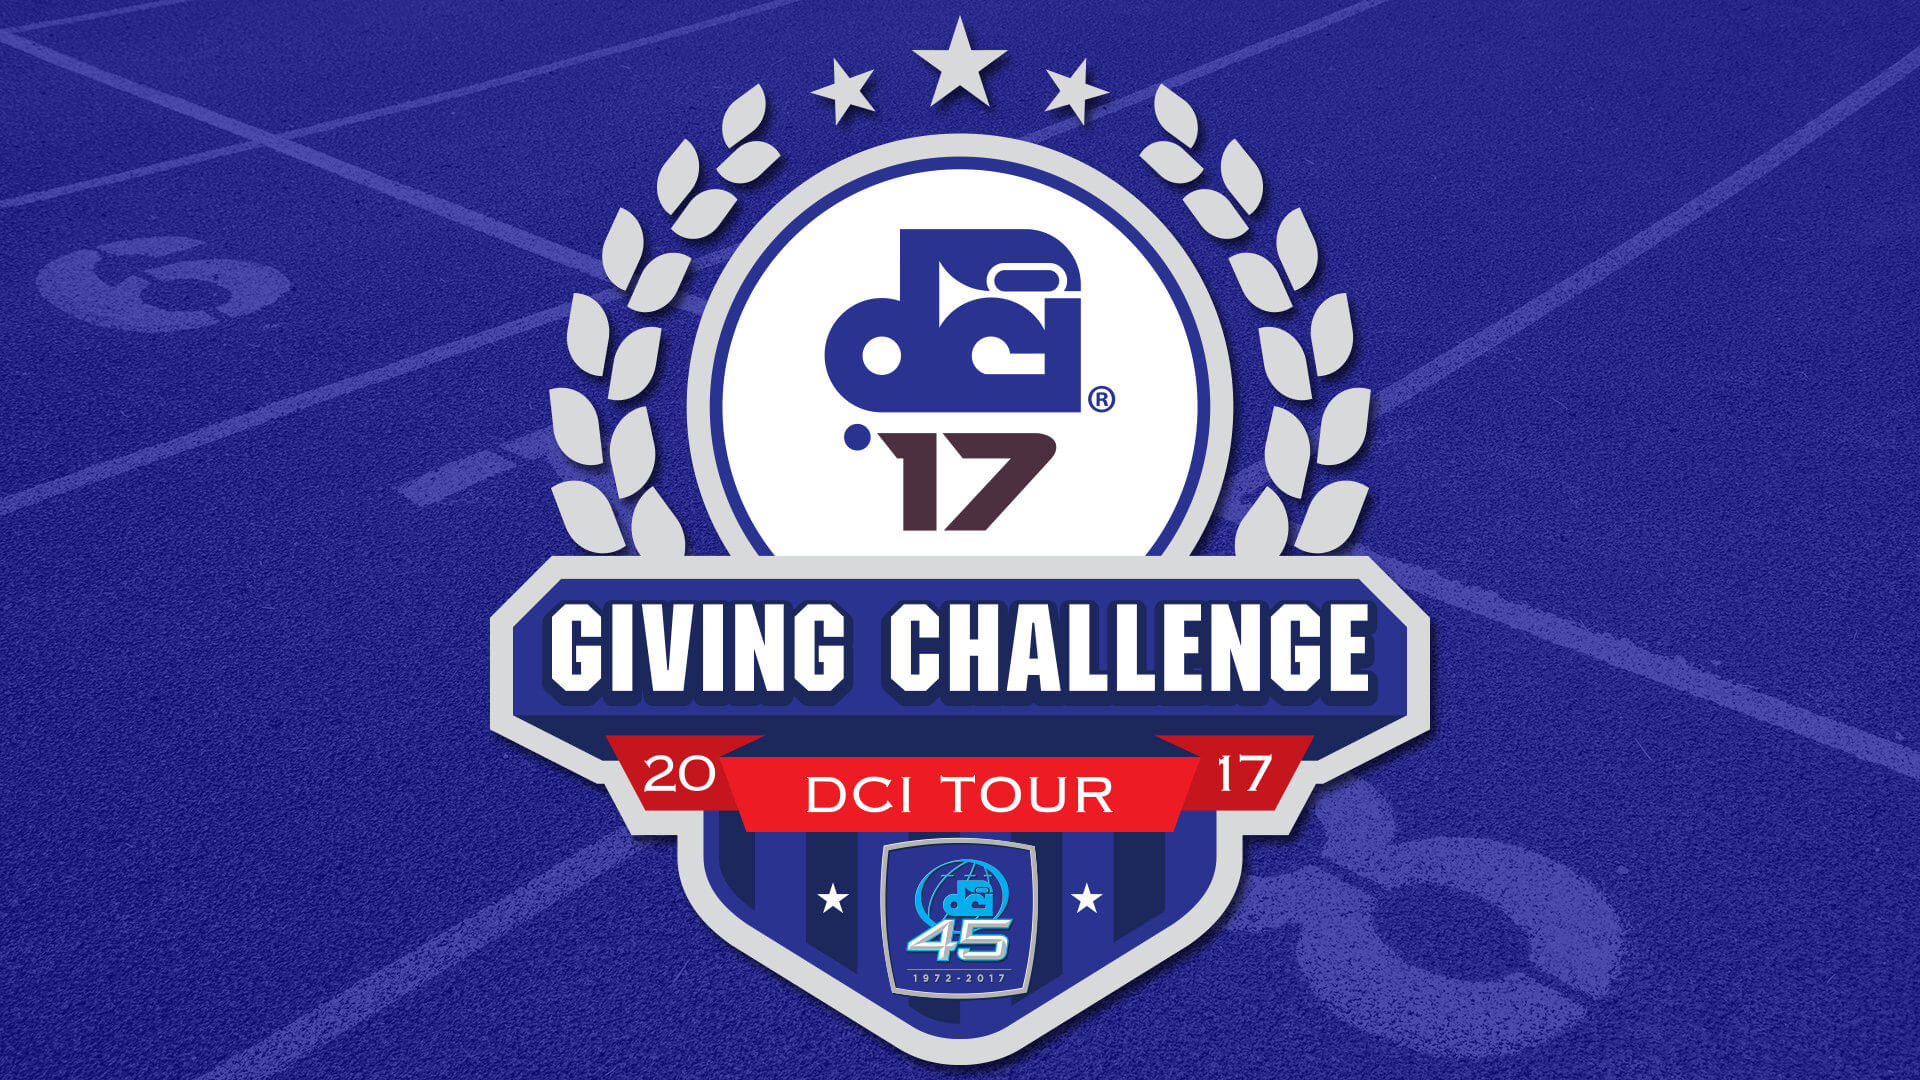 2017 DCI Giving Challenge